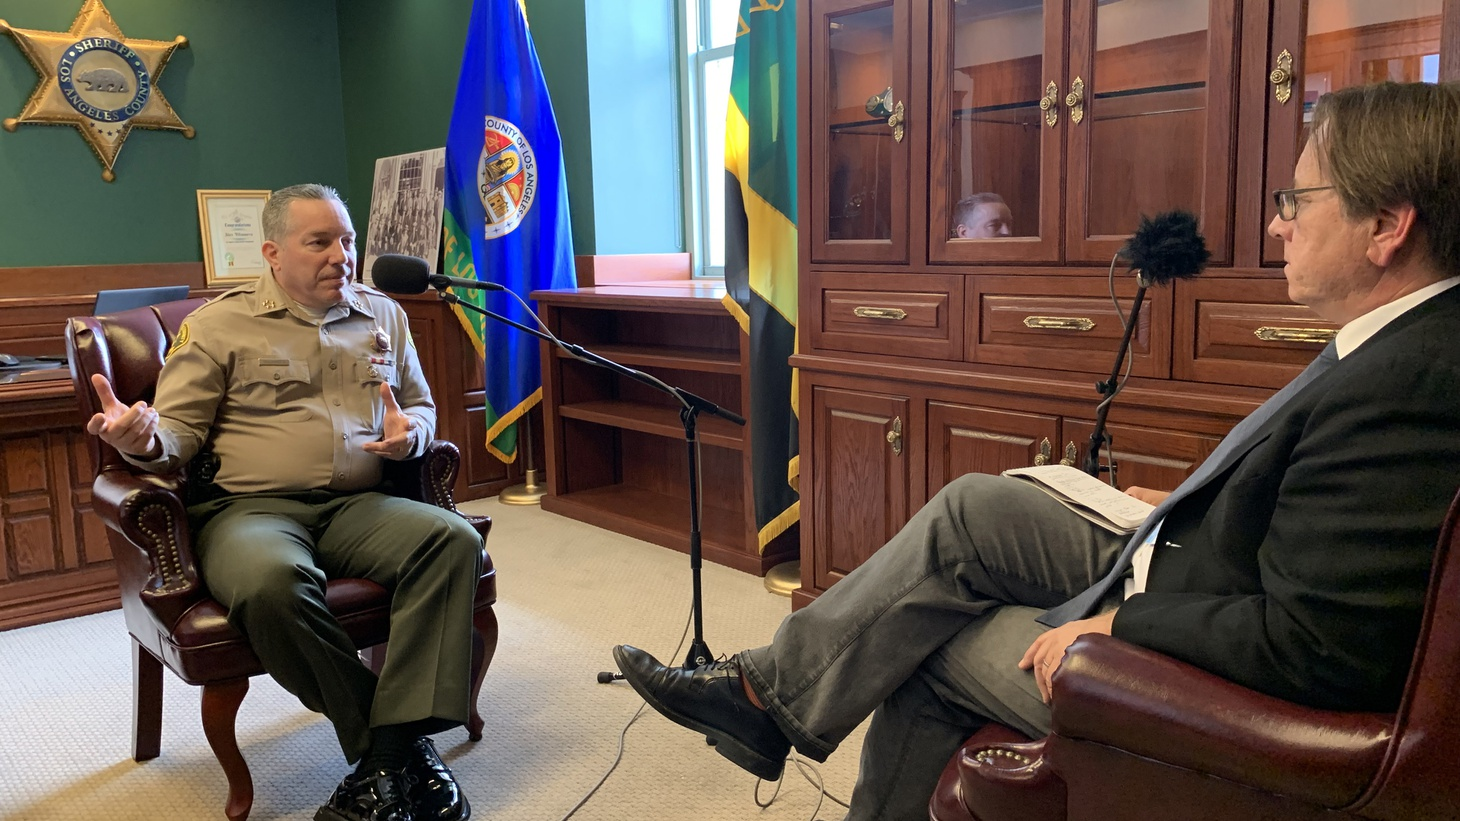 Sheriff Alex Villanueva in an interview with KCRW at his office at the Hall of Justice in downtown Los Angeles, on March 21, 2019.